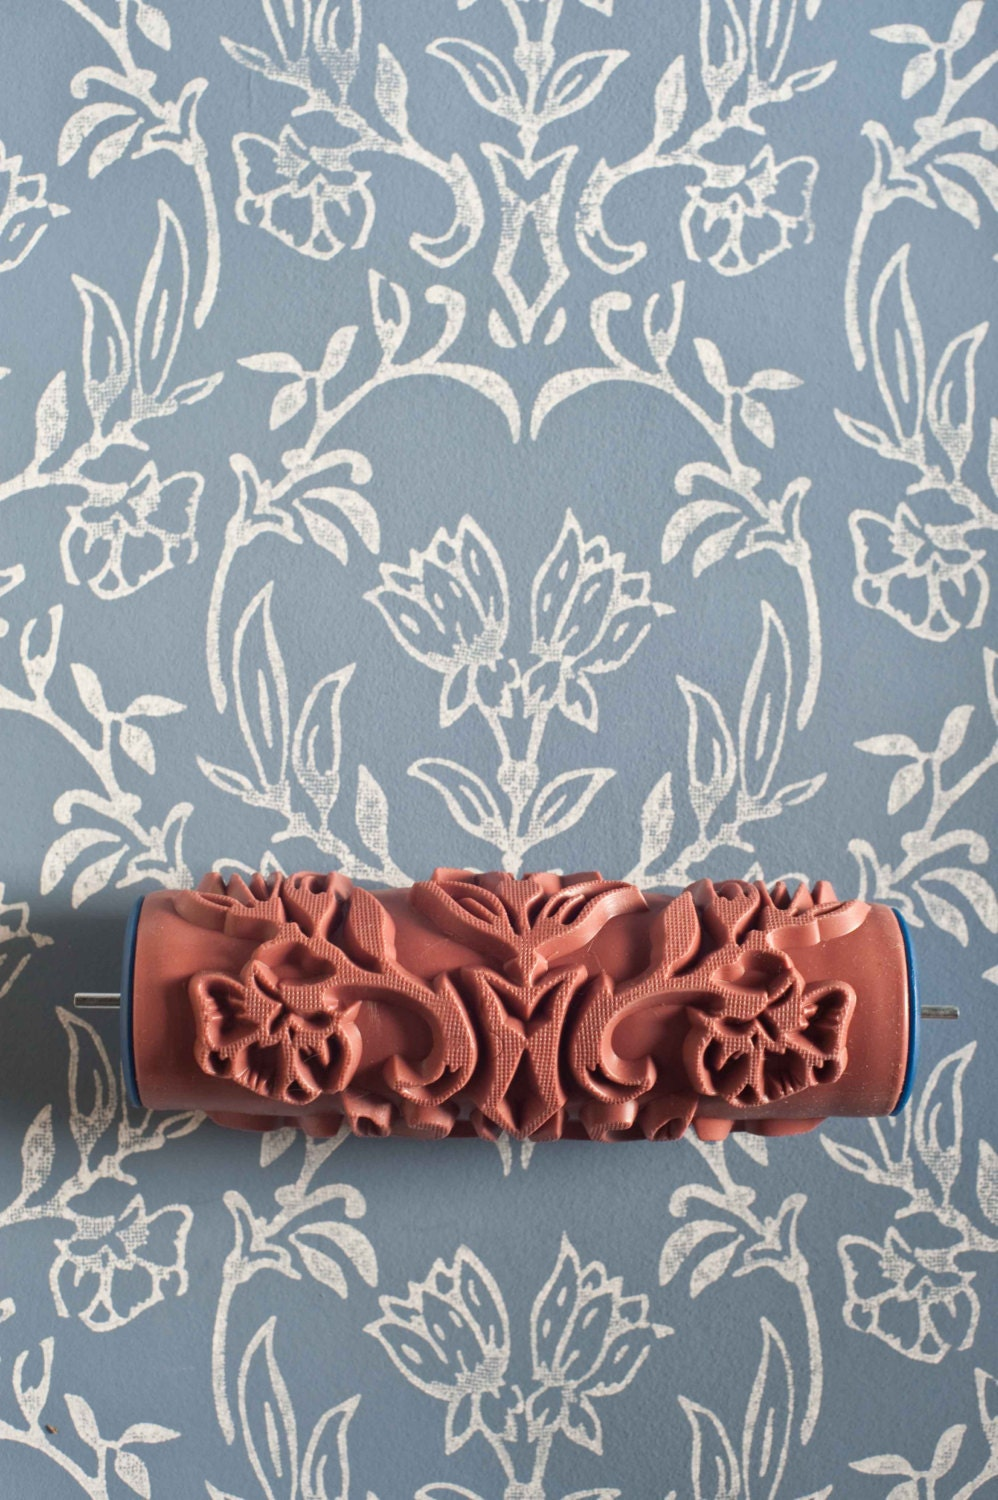 Tapet Patterned Paint Roller From The Painted House